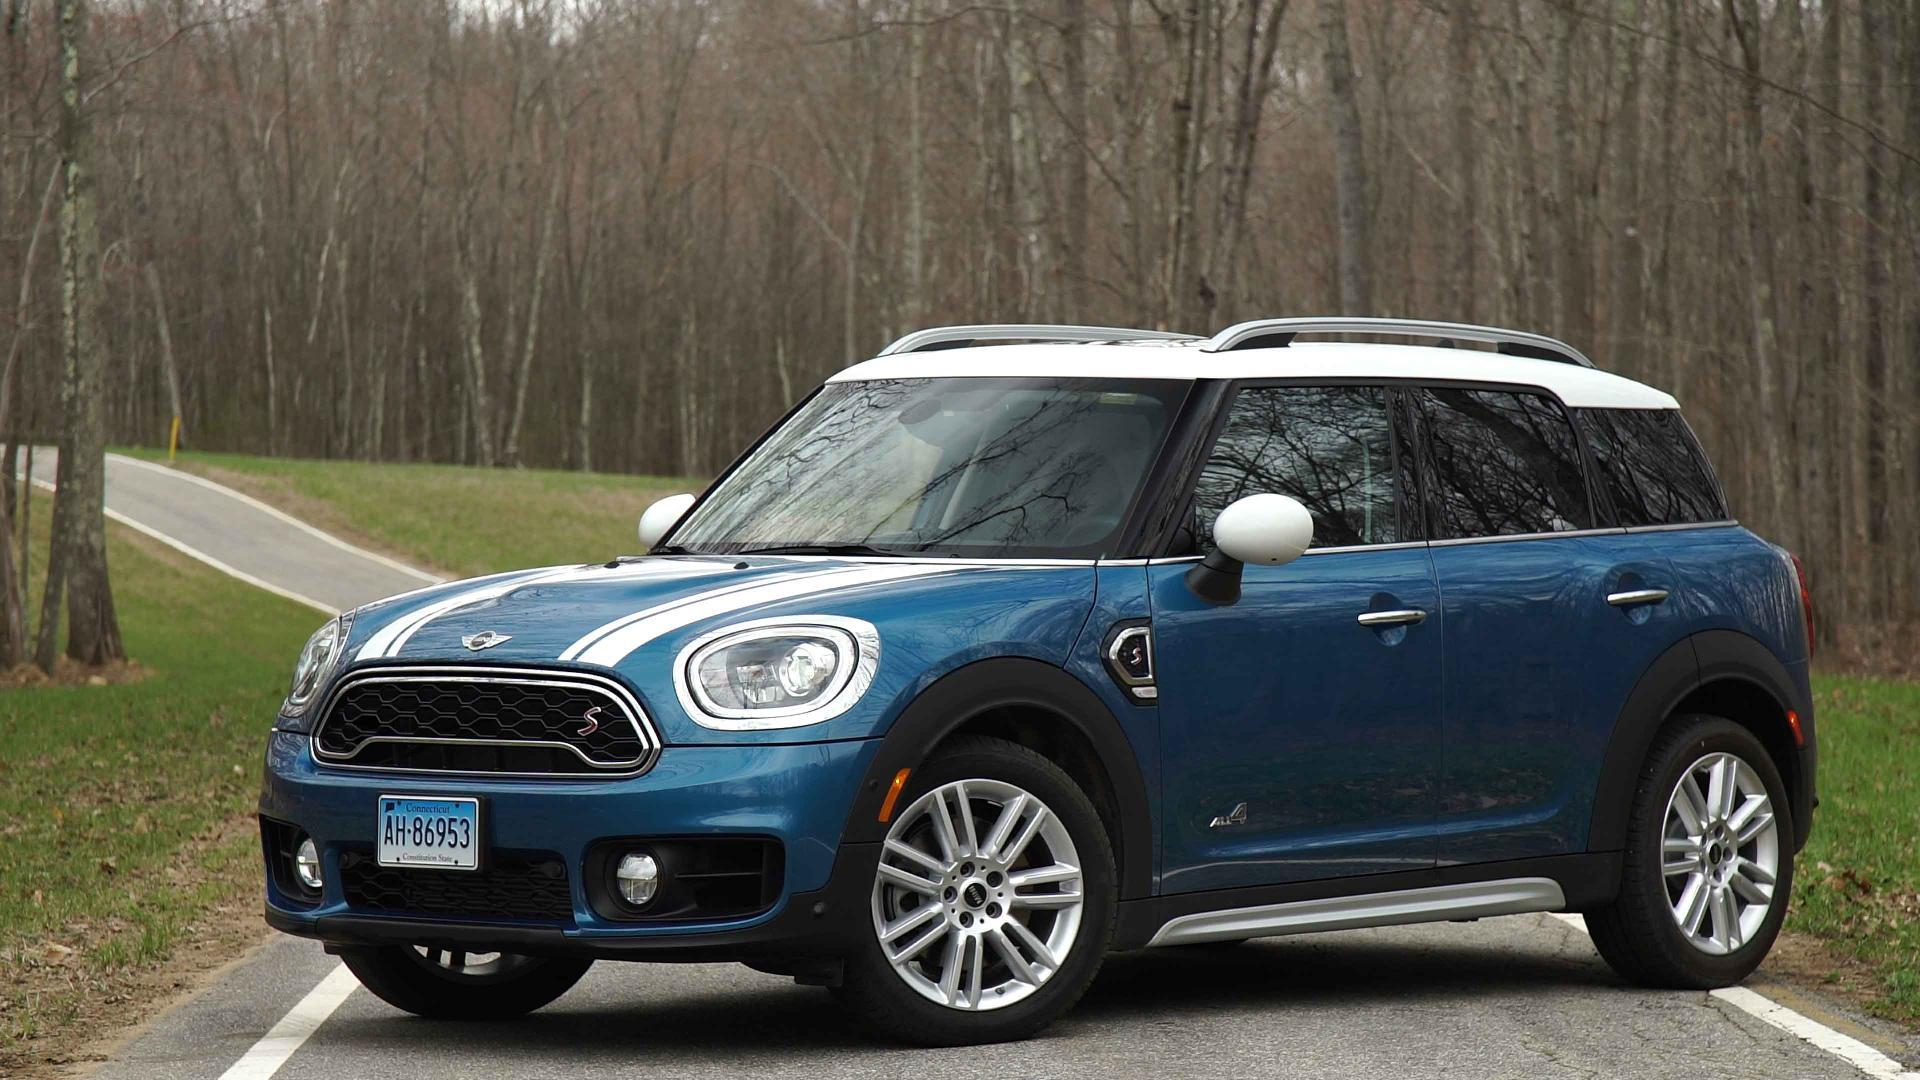 2017 mini cooper countryman grows bigger gains power and adds practicality. Black Bedroom Furniture Sets. Home Design Ideas